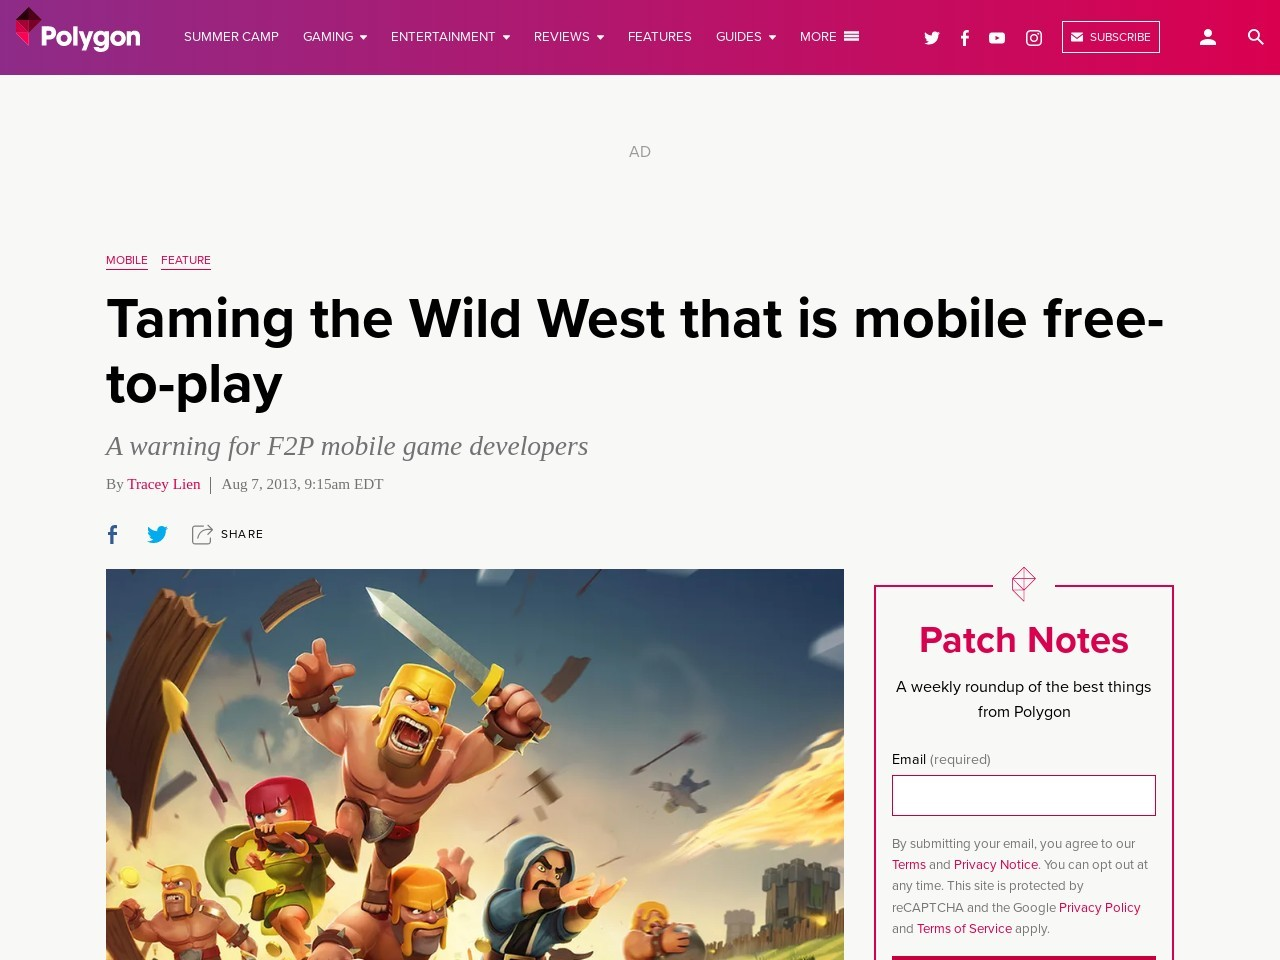 Taming the Wild West that is mobile free-to-play